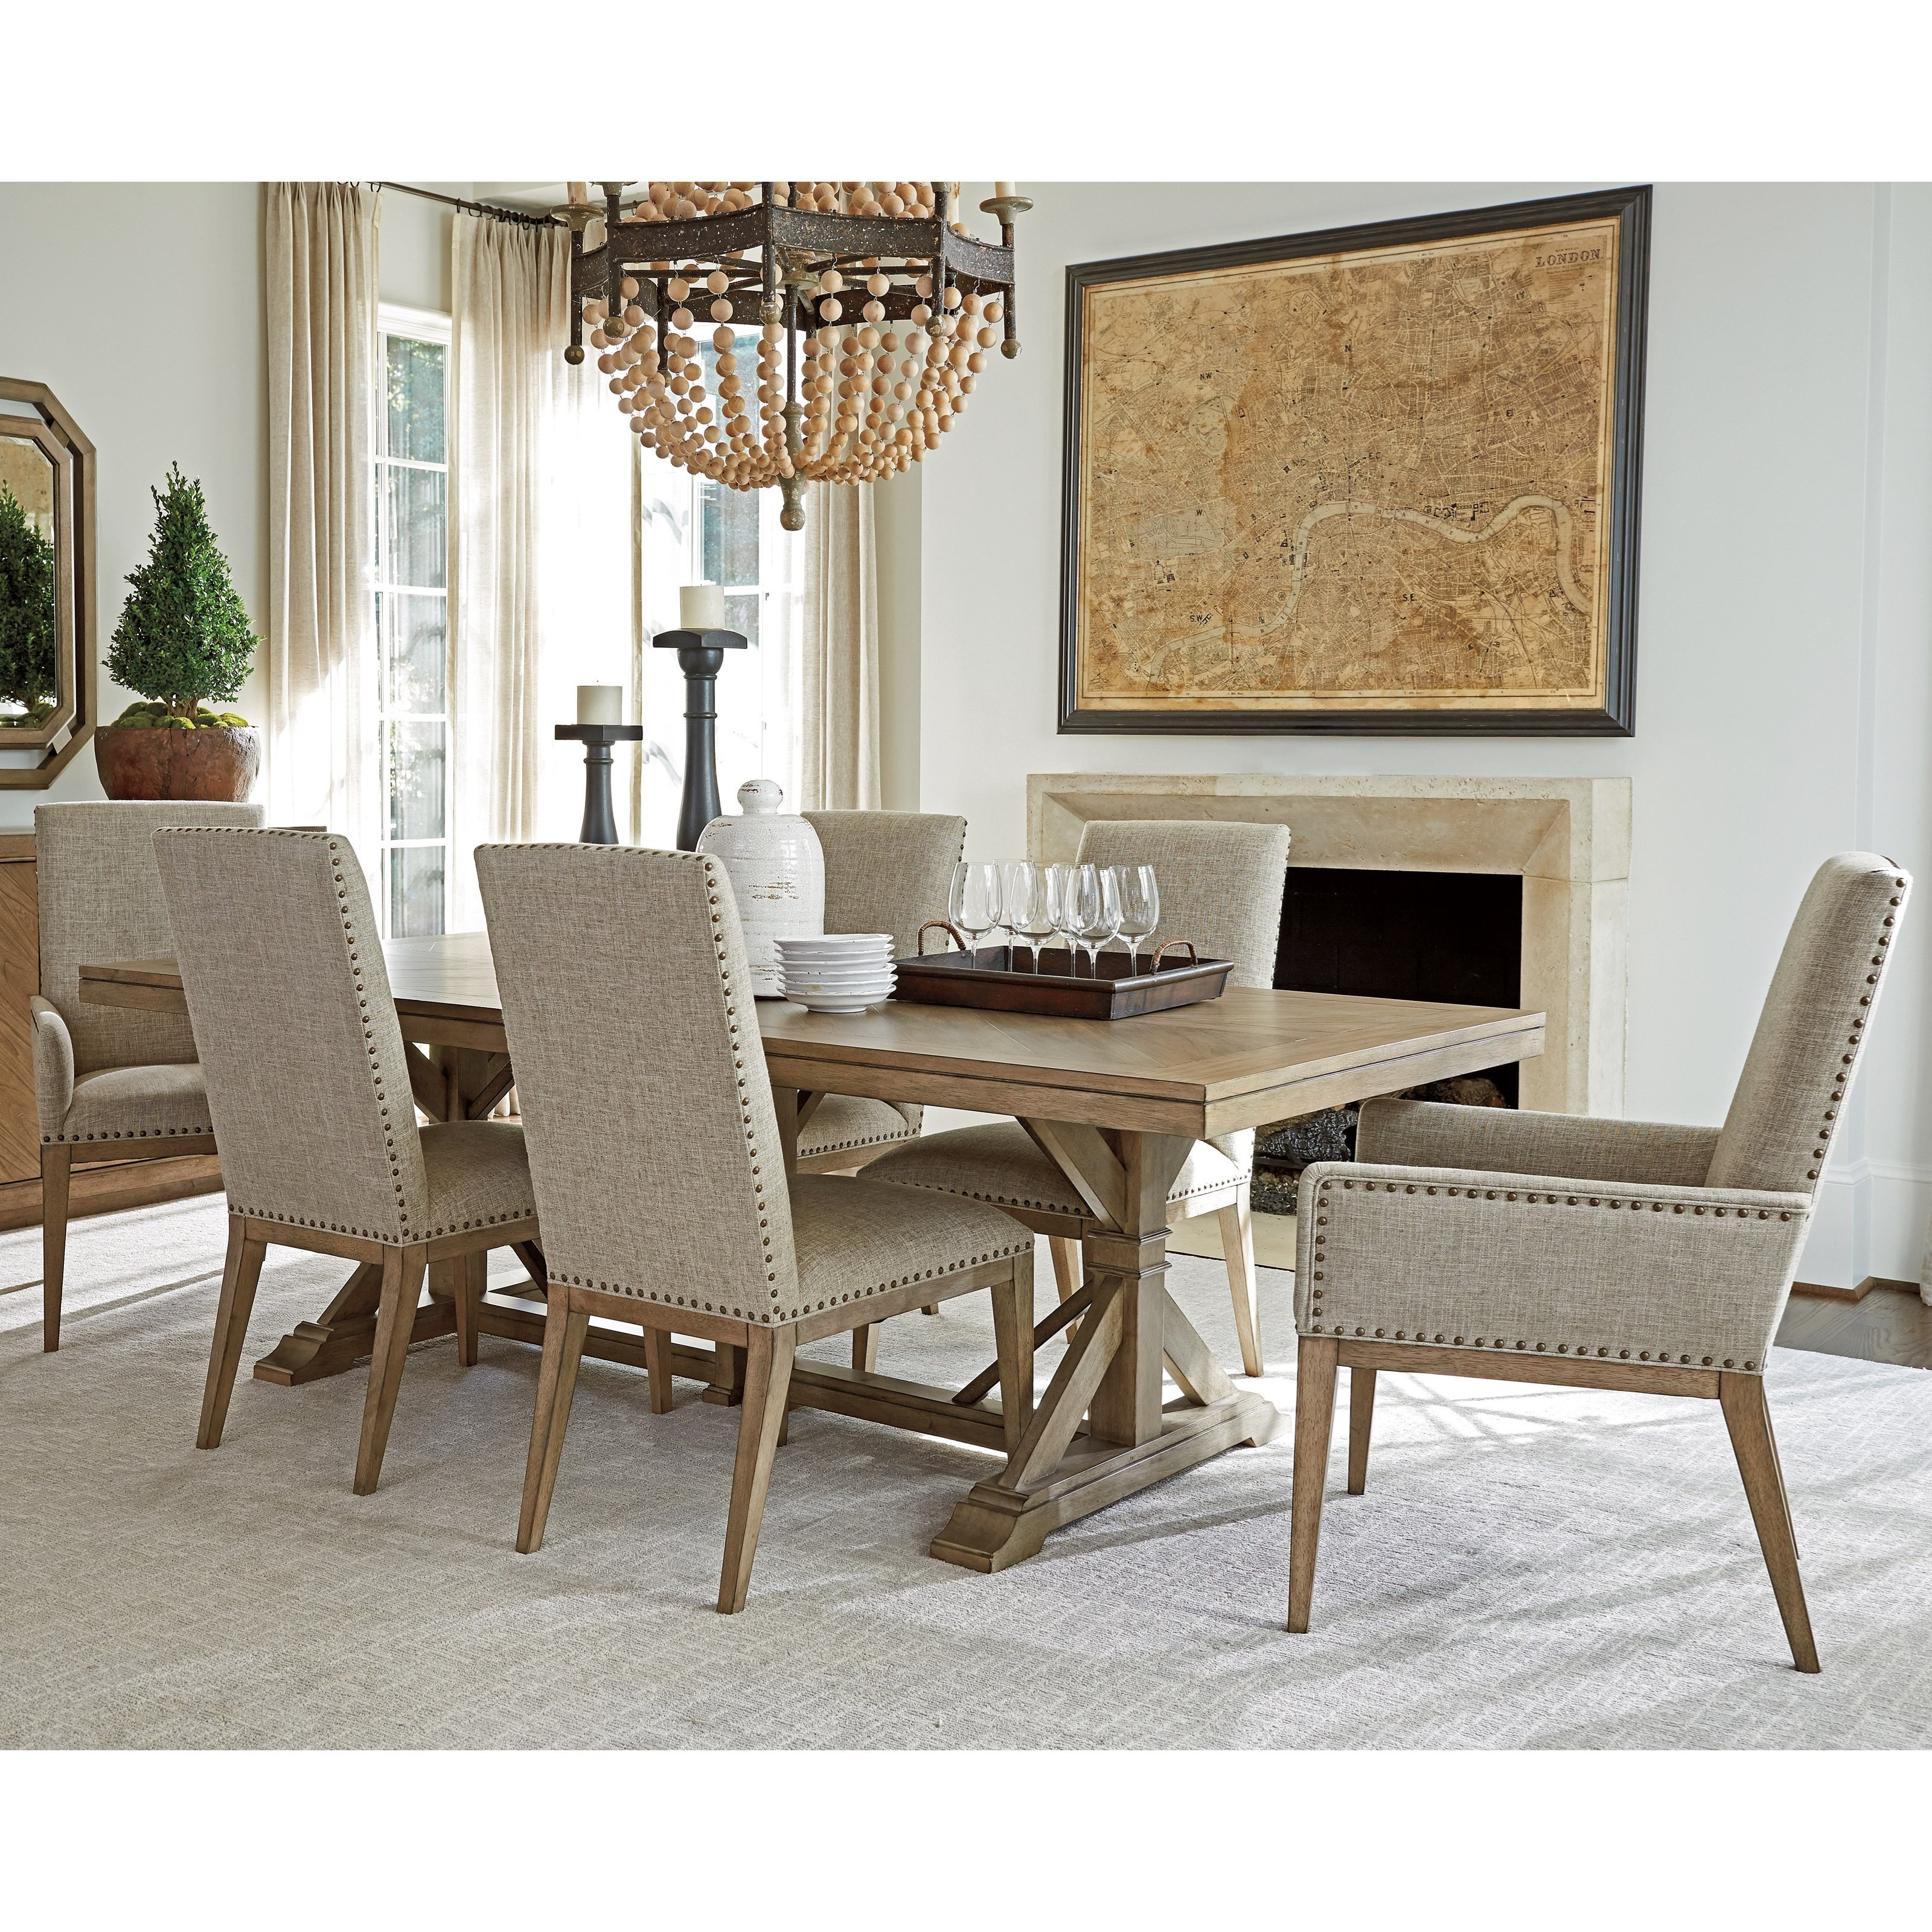 Tommy Bahama Dining Room Furniture: Tommy Bahama Home Cypress Point Seven Piece Dining Set